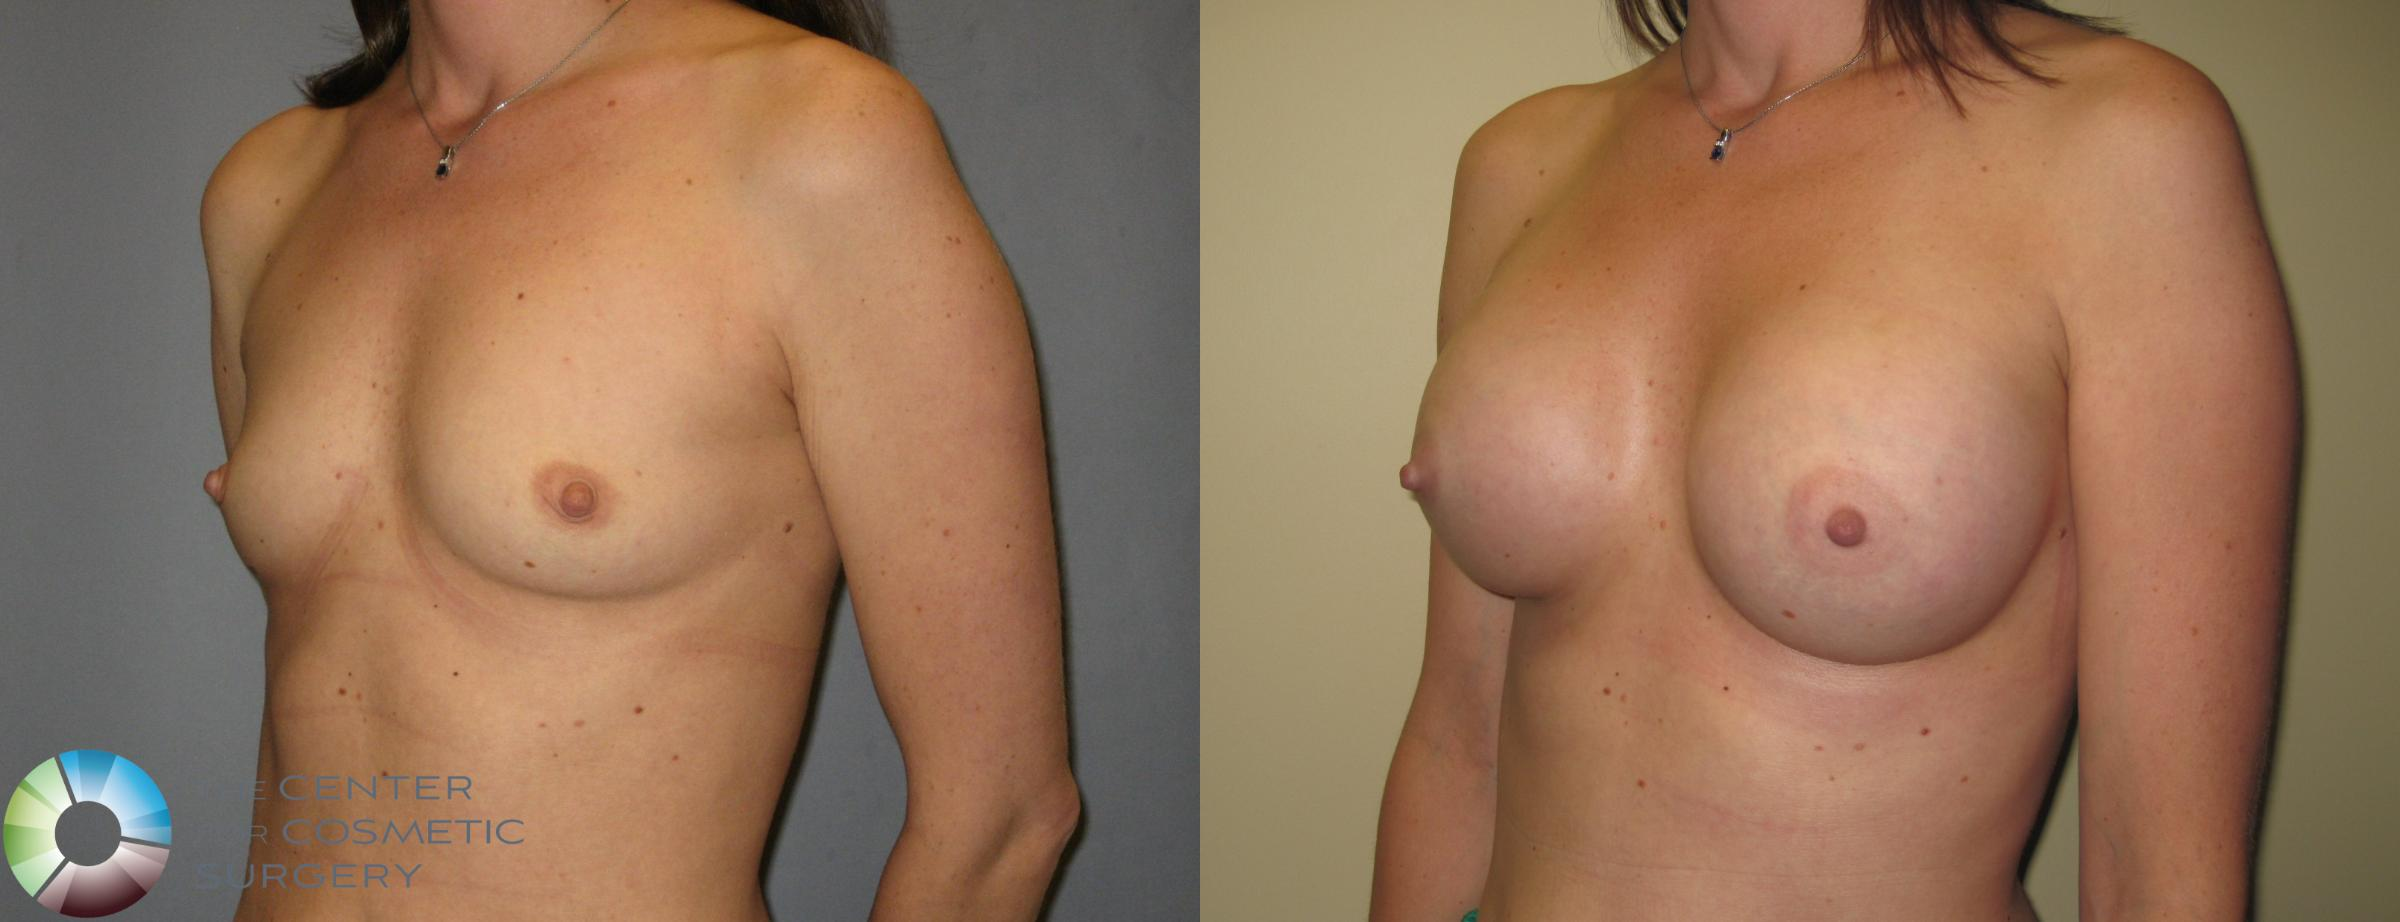 Breast Augmentation Case 424 Before & After View #2 | Golden, CO | The Center for Cosmetic Surgery